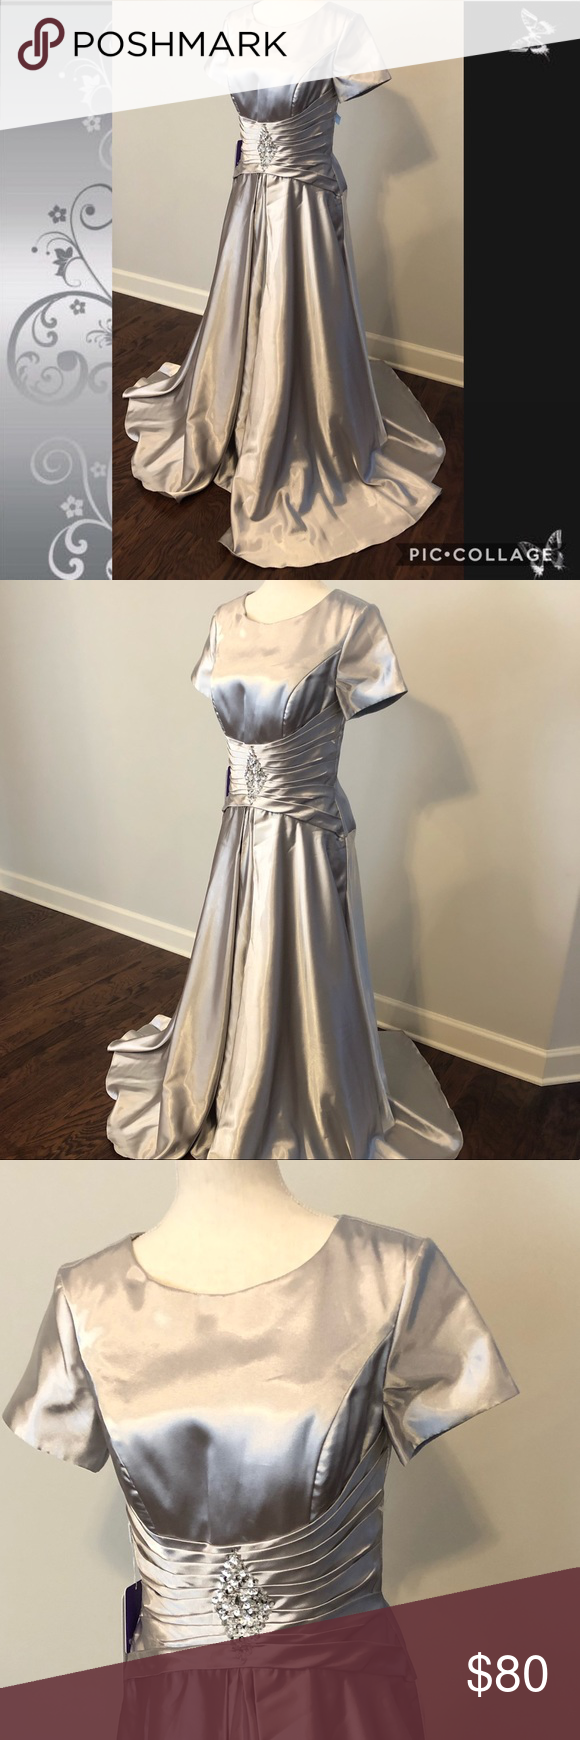 d53c199eb75 JJ s House Drop Waist Mother of the Bride Gown JJ s House elegant mother of  the bride or special occasion gown in a beautiful liquid silver color.